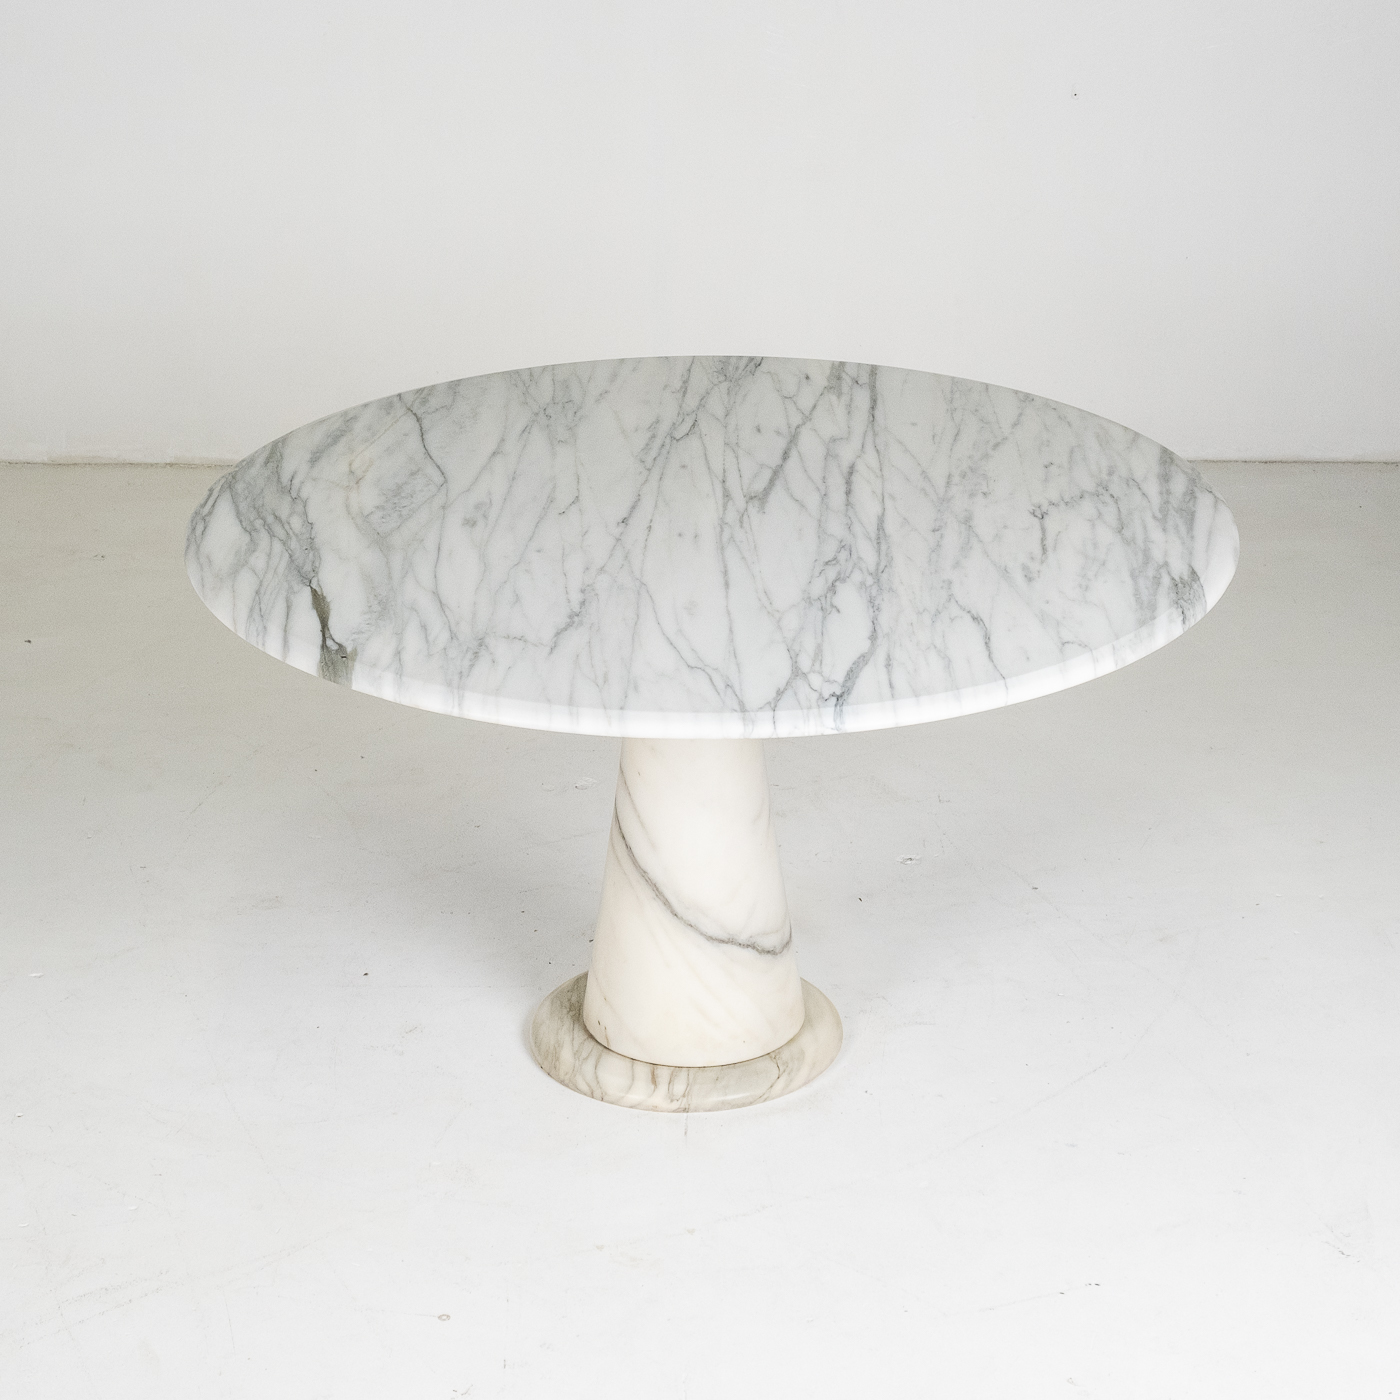 Round Marble Dining Table In The Style Of The M1 By Angelo Mangiarotti In White Calacatta Marble, 1970s, Italy 87